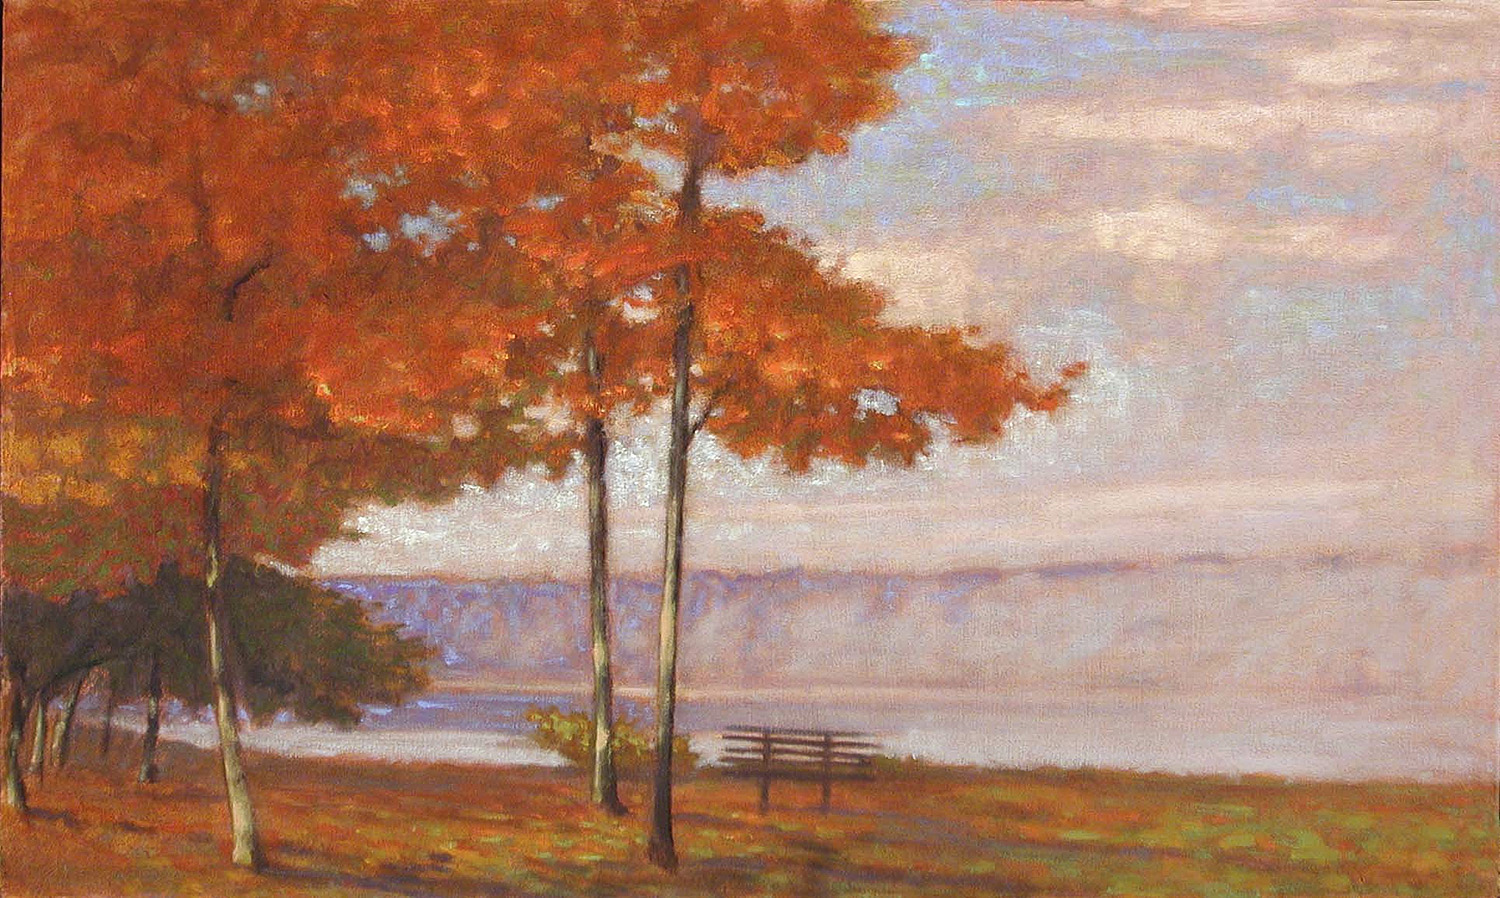 Morning on Long Lake   | oil on canvas | 24 x 40"